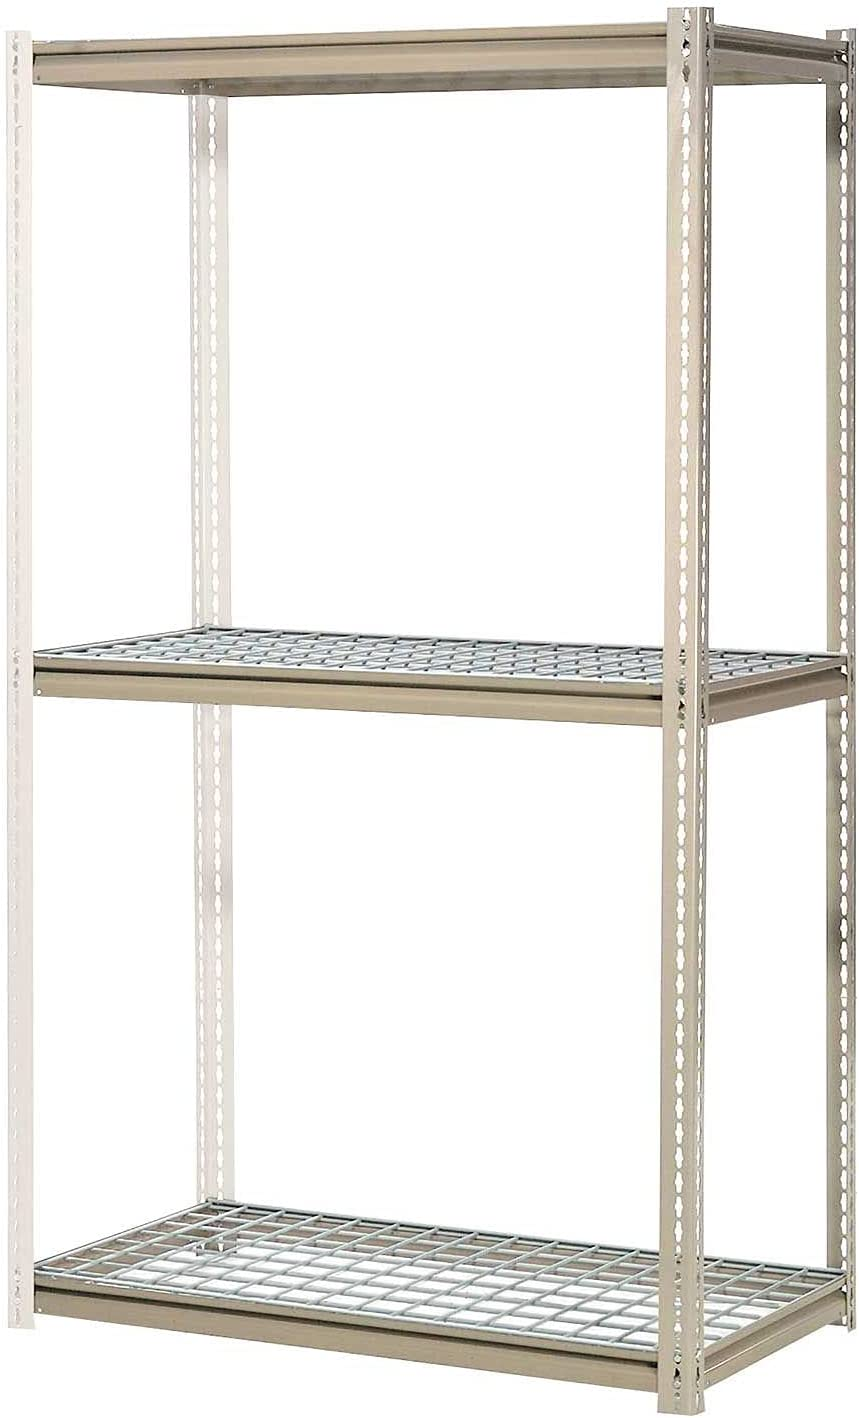 High Capacity Arlington Mall Add-On Rack With 3 Levels Lb Wire 1300 P Tulsa Mall Cap Deck